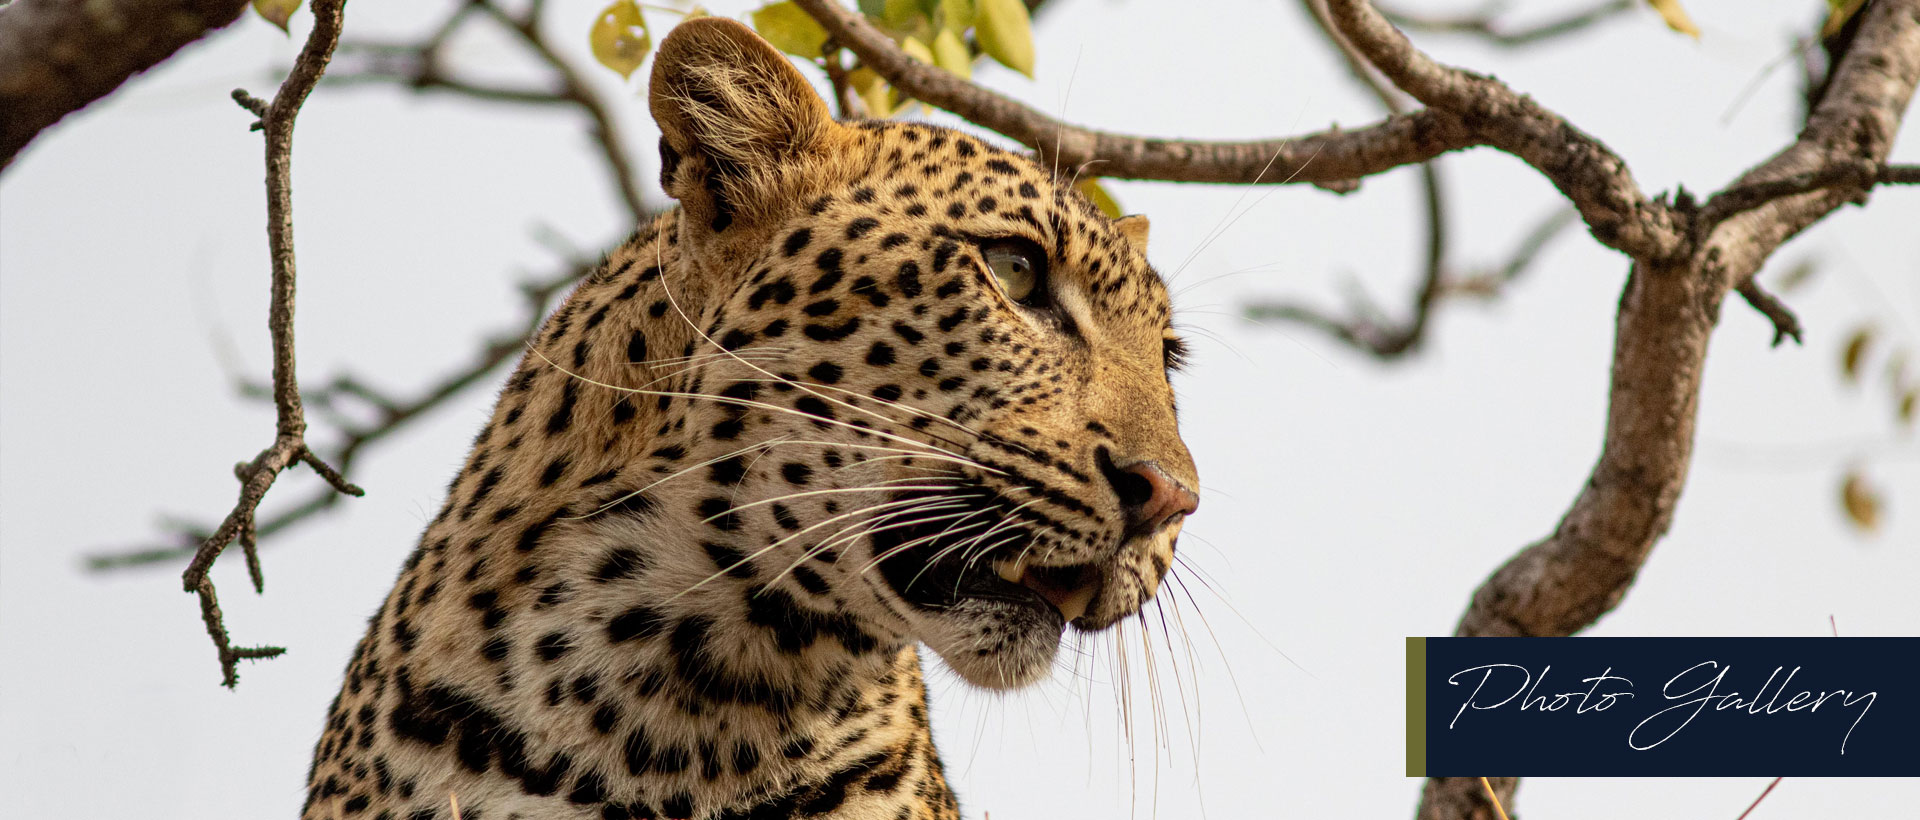 Game Drive specials in Hoedspruit